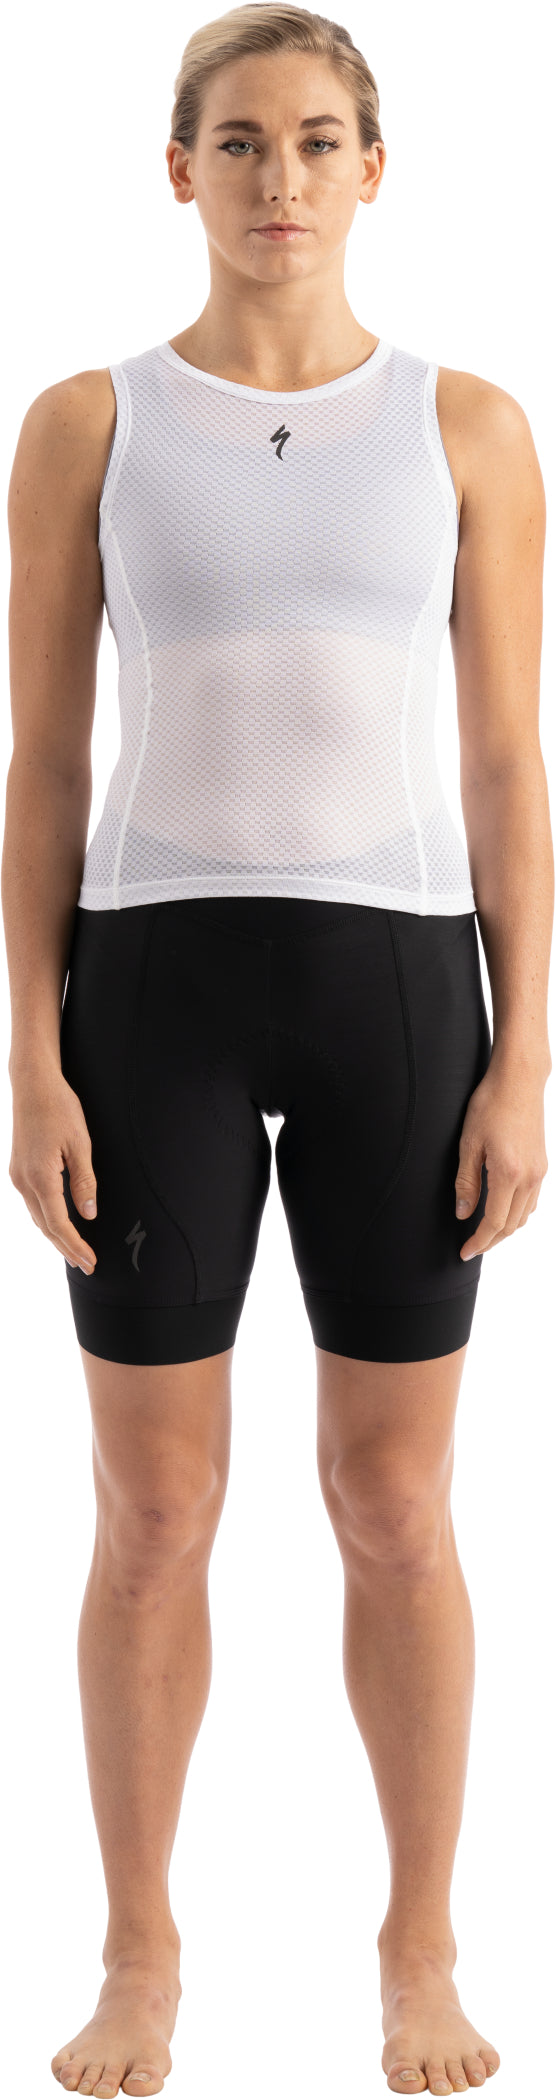 Women's SL Sleeveless Base Layer